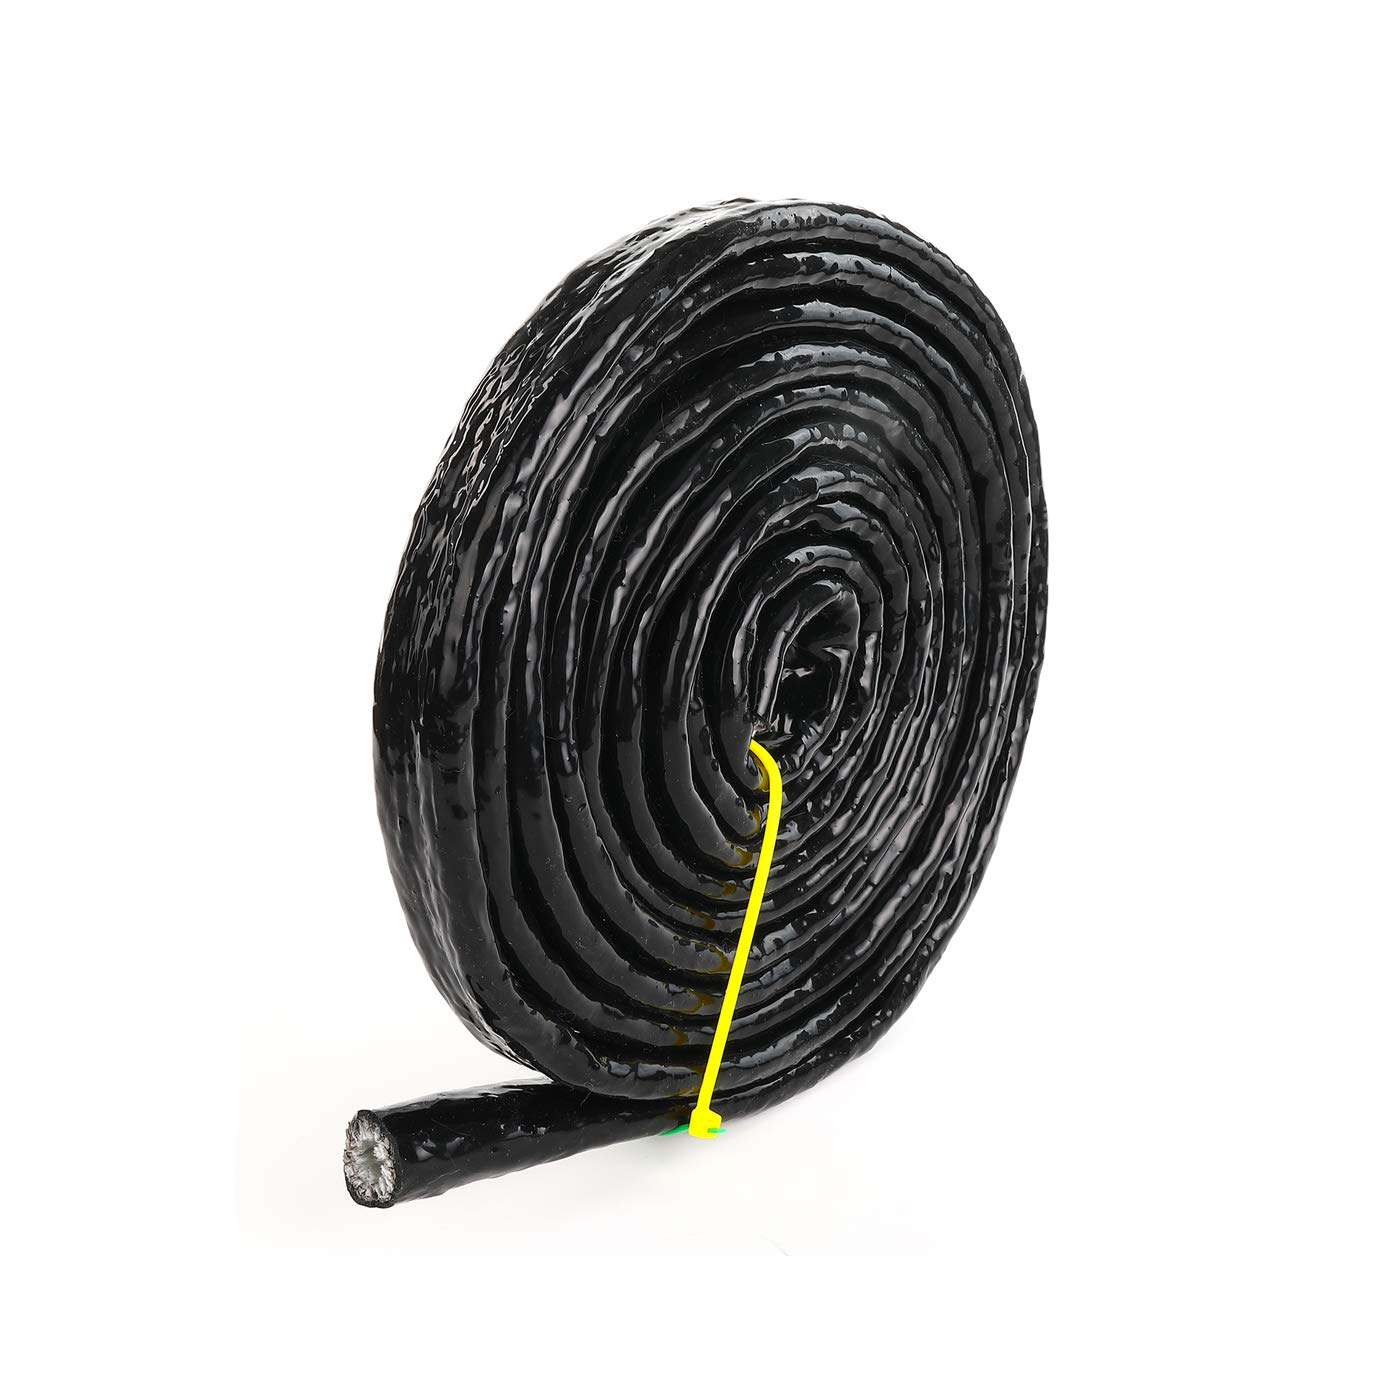 3//8 ID Silicone Coated Fiberglass Heat Shielded Fire Sleeve for Hose Lines /& Electrical Wiring 10 Feet 3//8 ID